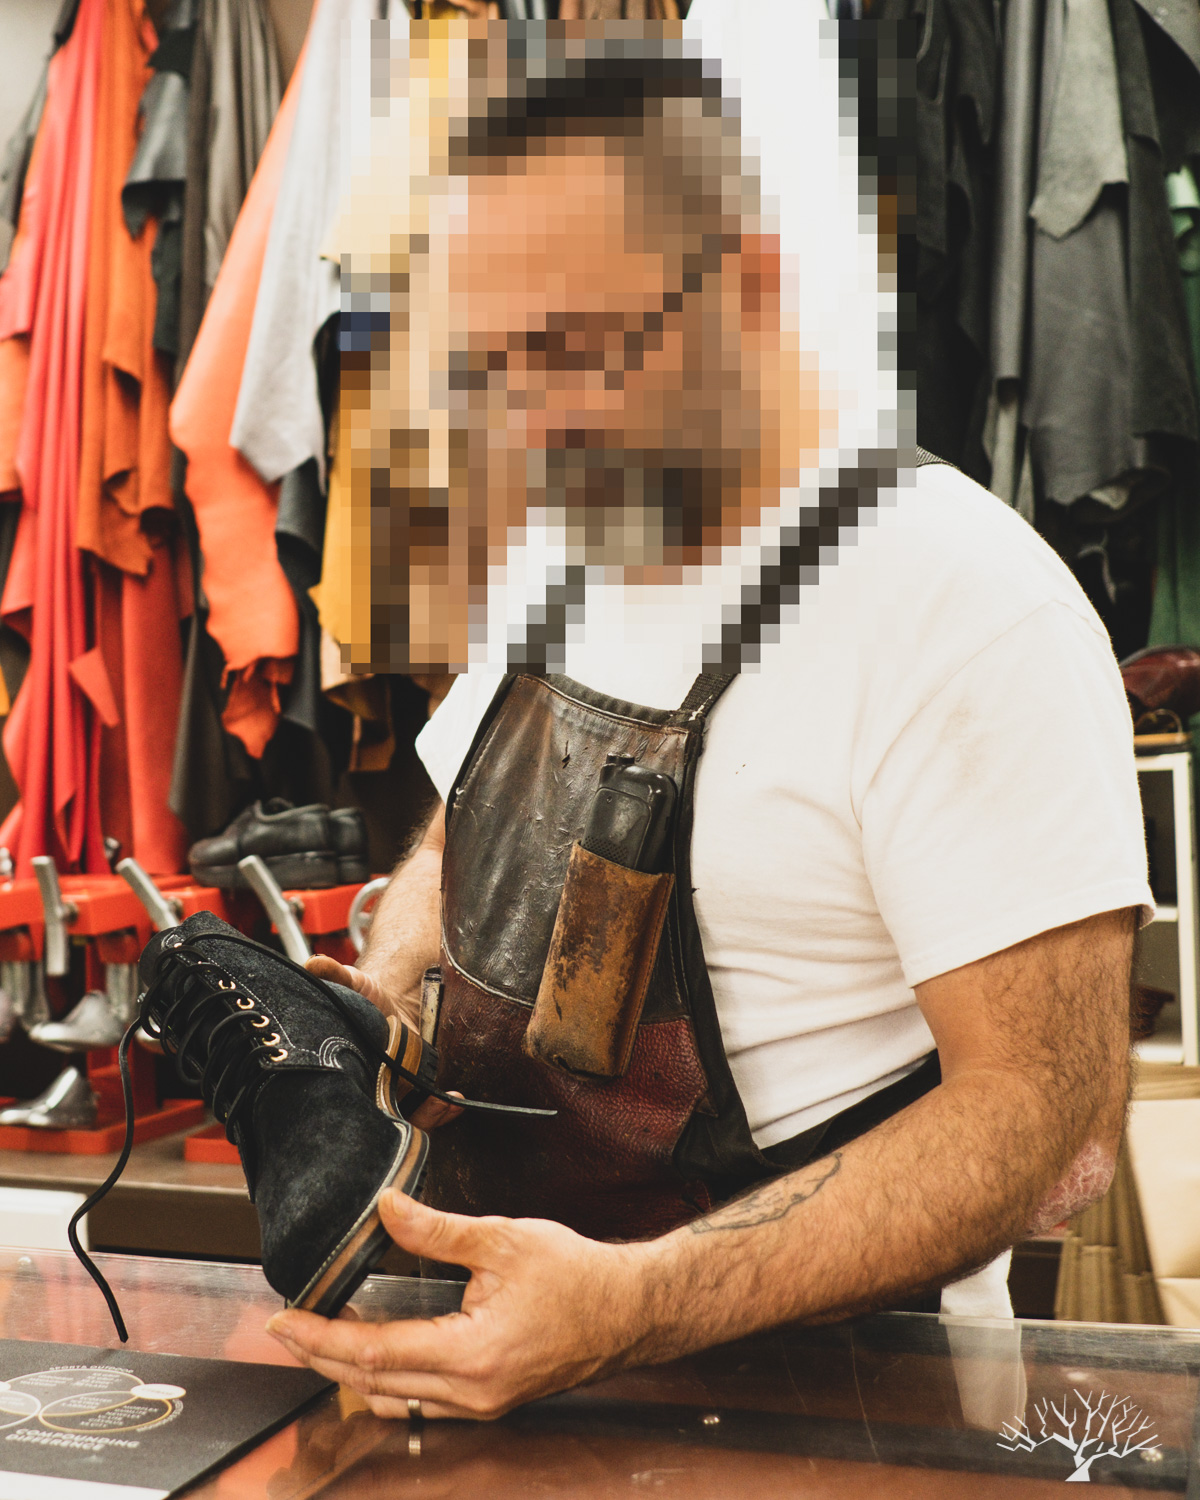 An anonymous cobbler in Northern Virginia using his expert cobbling skills to remake the Midnight Gasfire Boondockers into Noontime Waterdowns